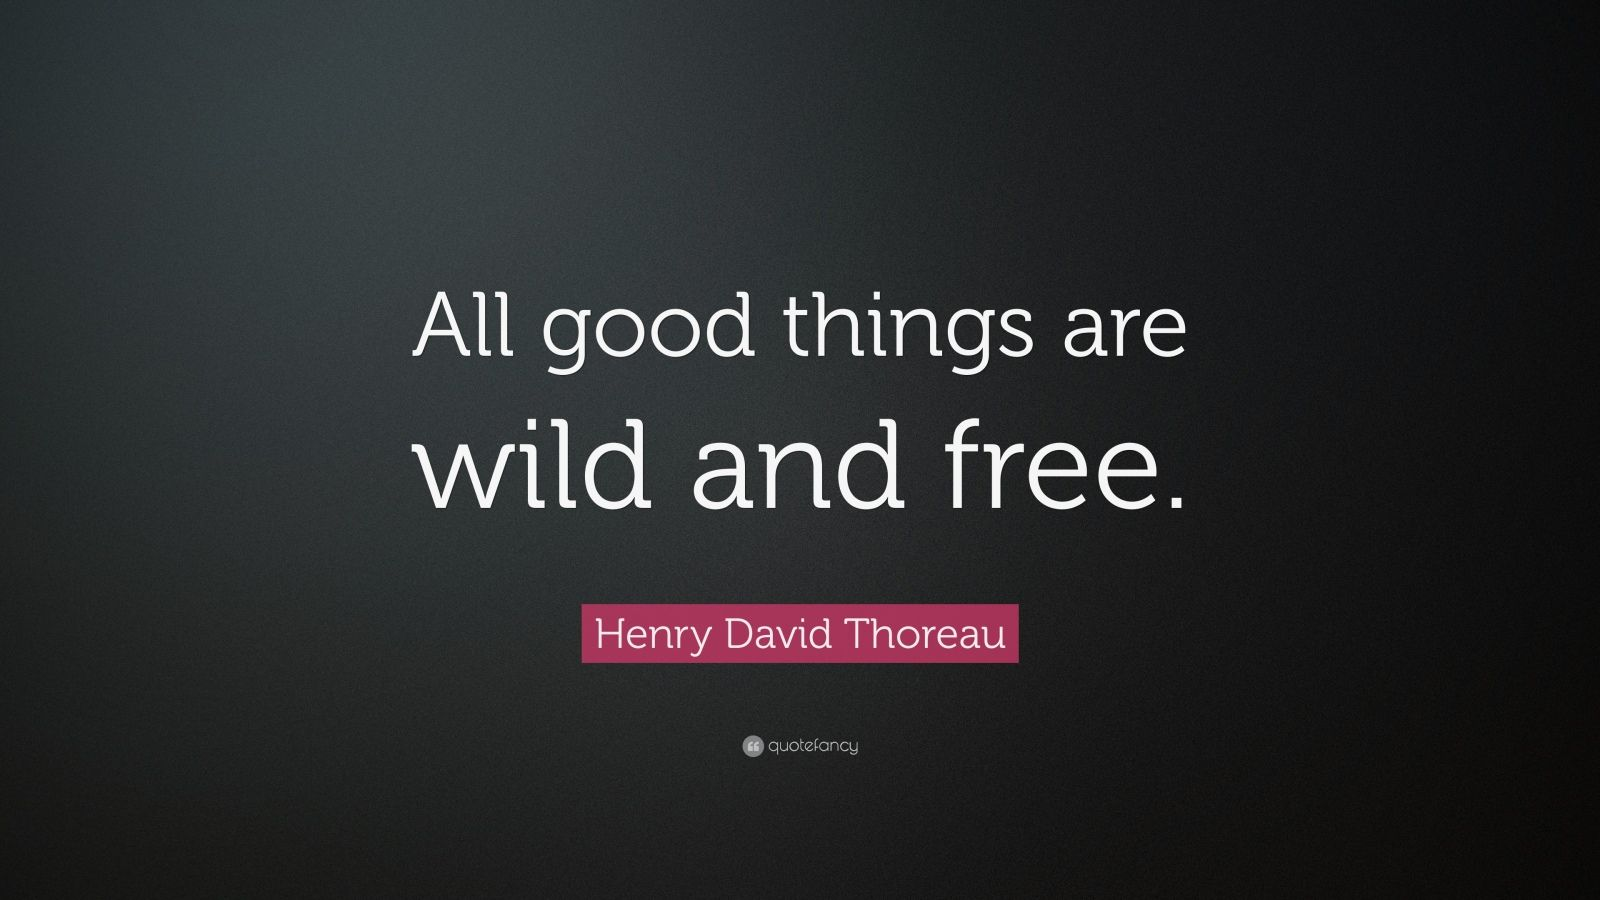 why is henry david thoreau credible